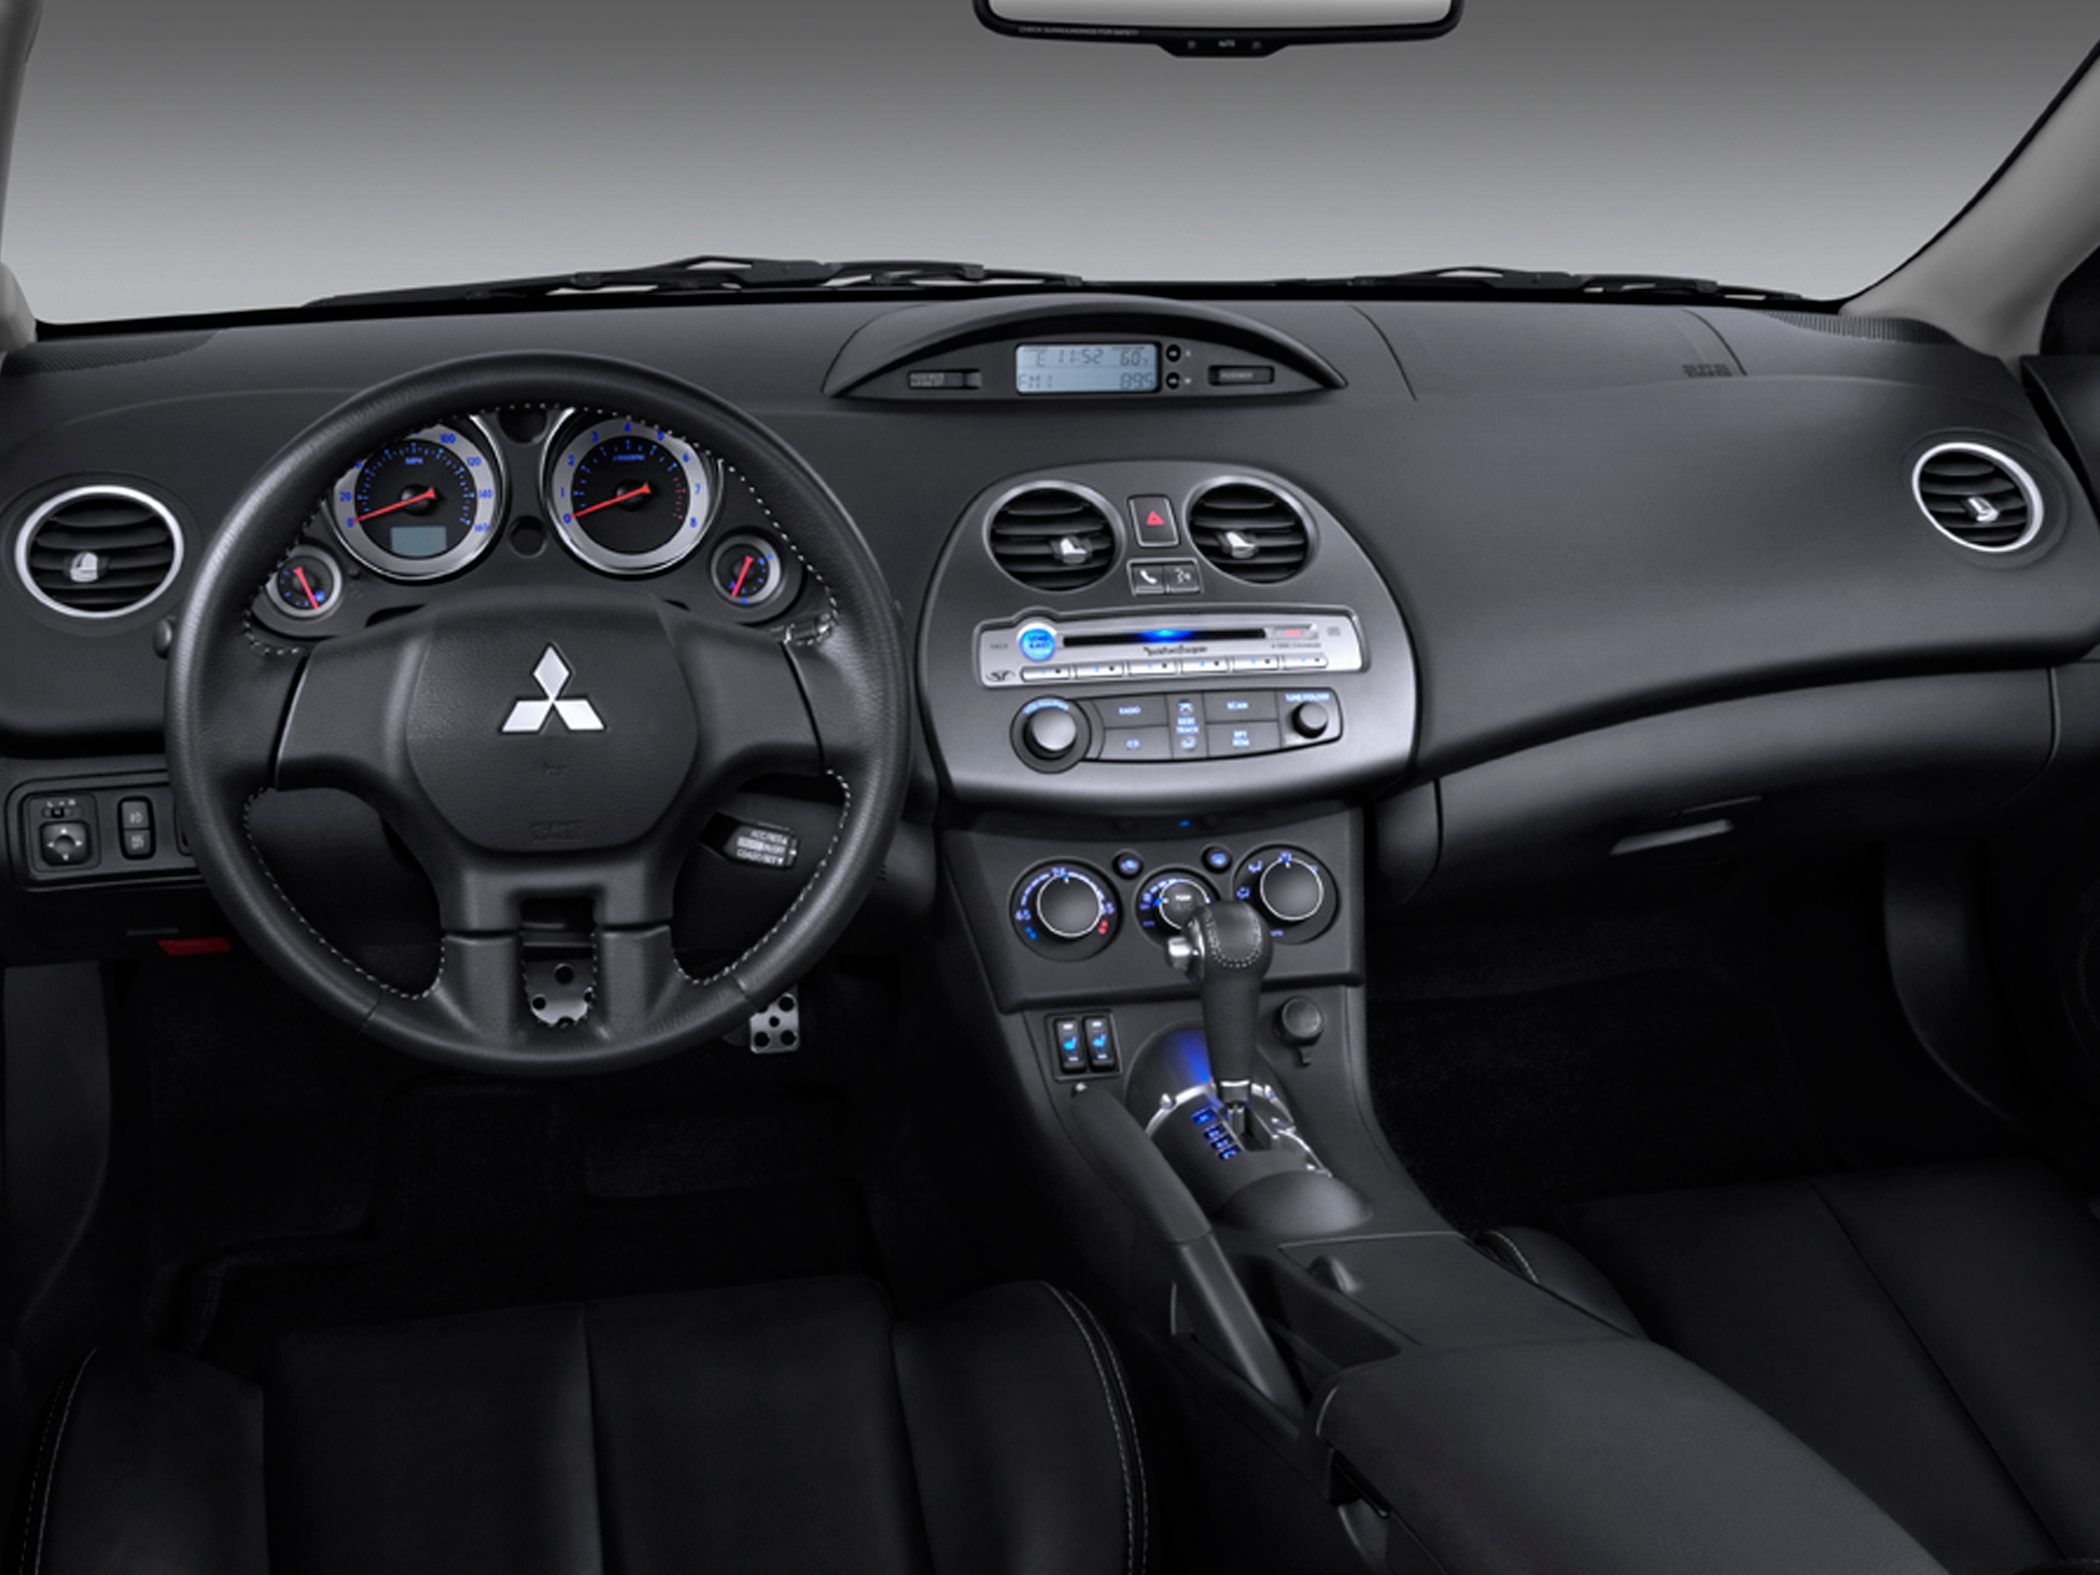 New 2017 Mitsubishi Eclipse Is Going To Feature A Lot Of Updates Body Part Has Some And Curvy Design Patterns First Time With Model Many